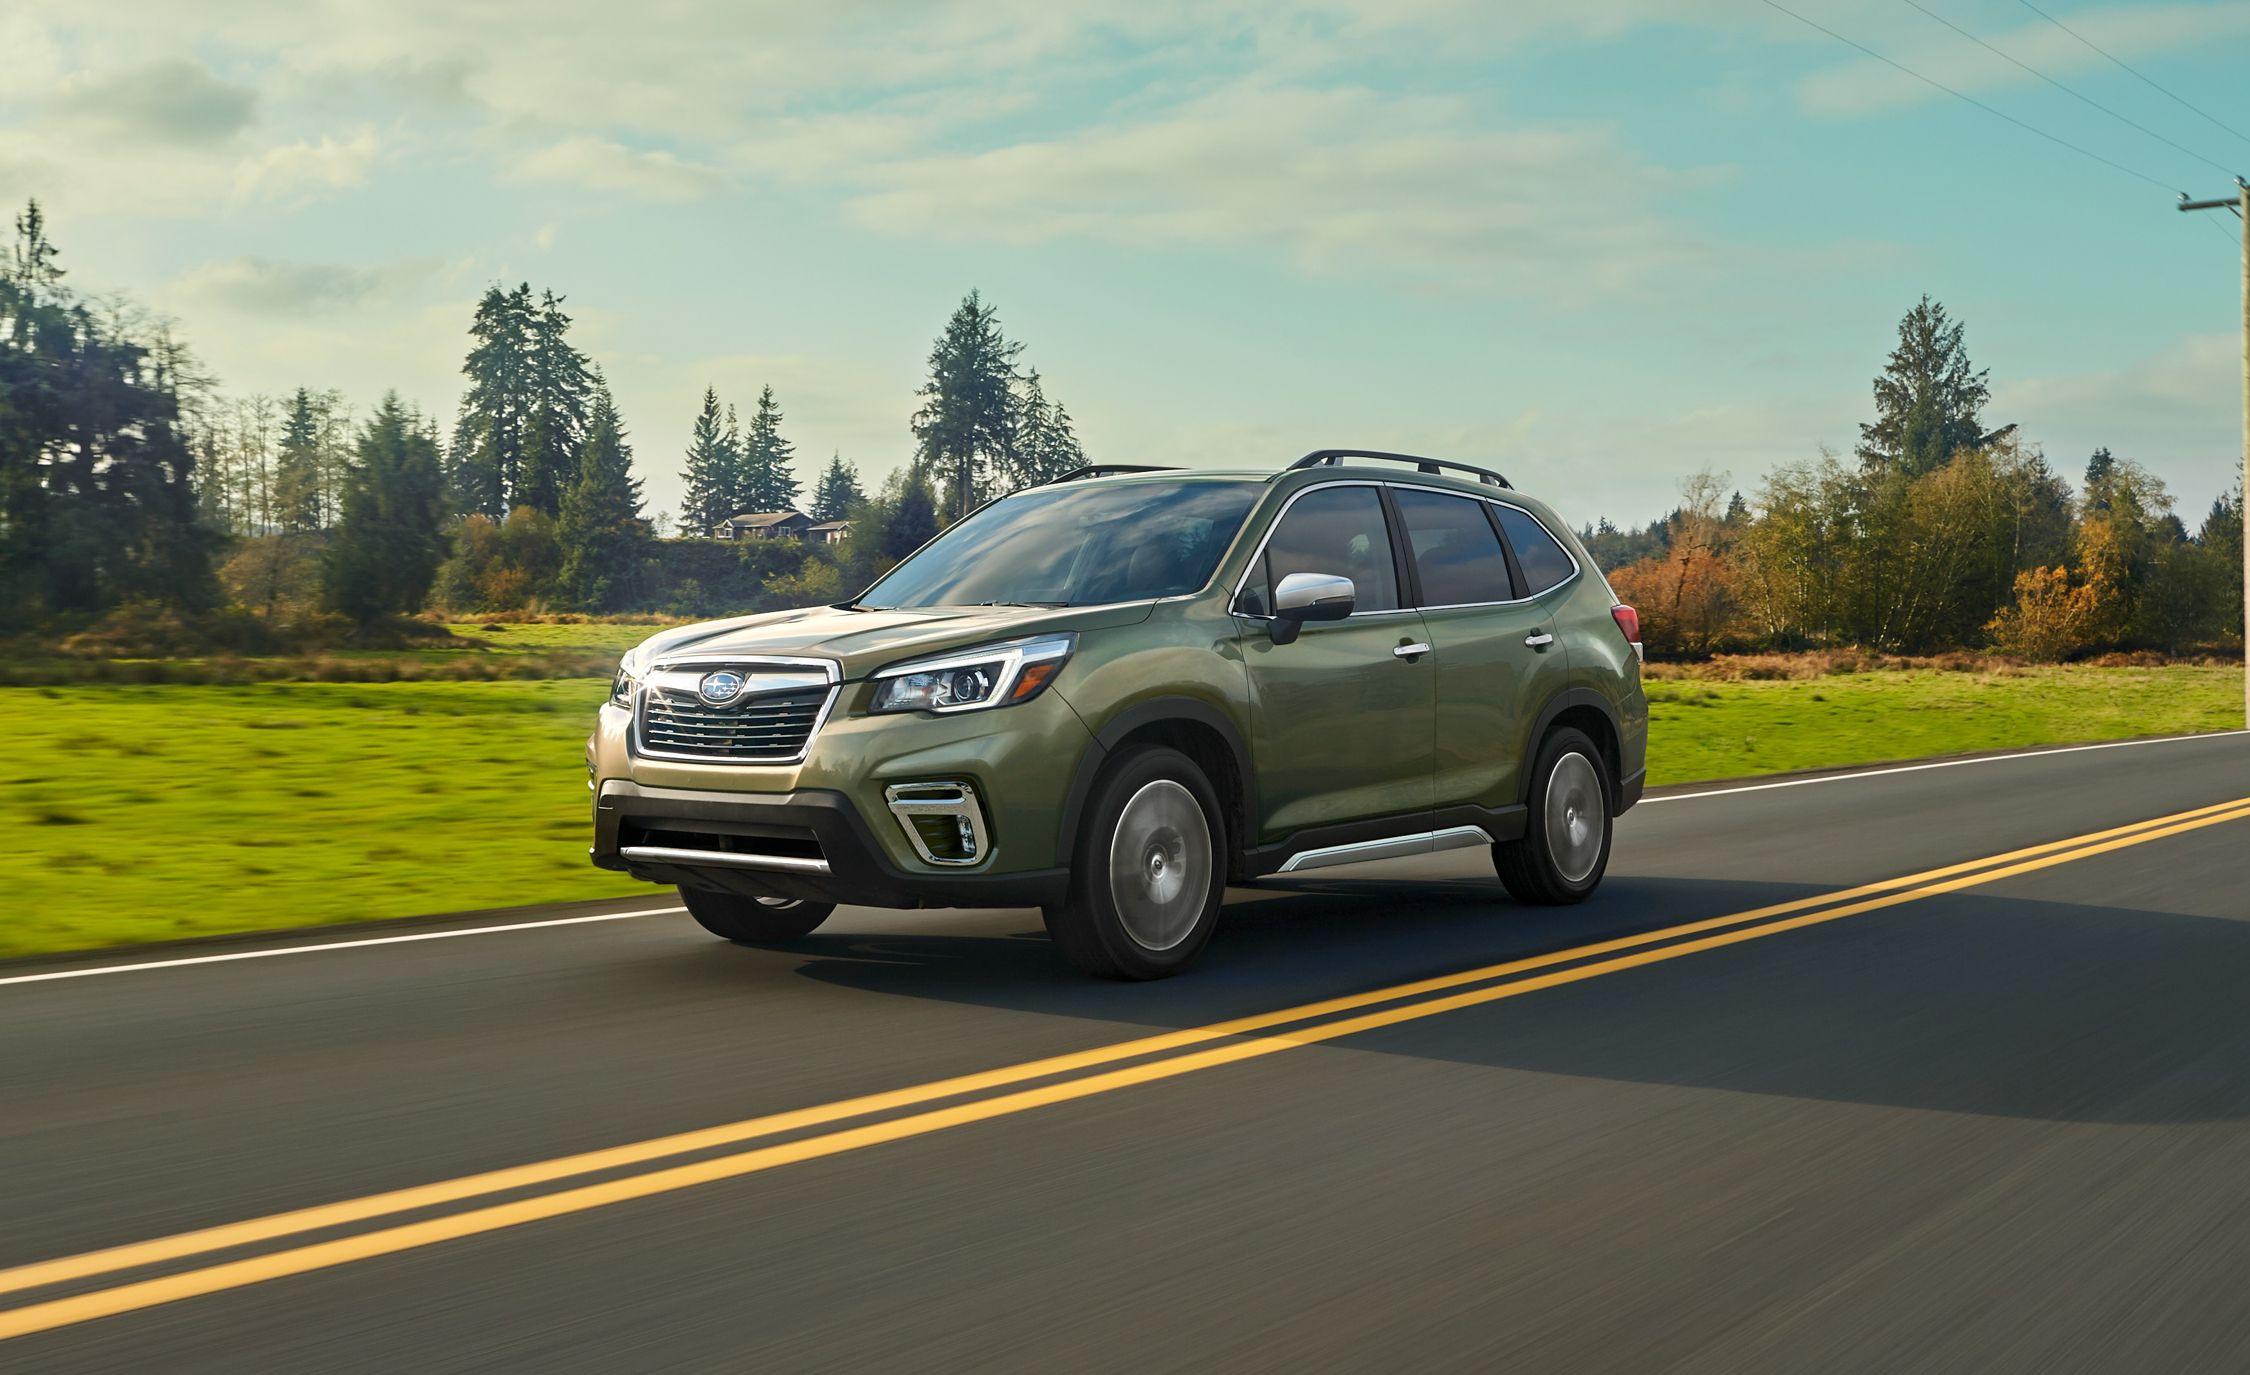 2019 Subaru Forester Reviews Price Photos And 1998 Outback Owners Manual Specs Car Driver